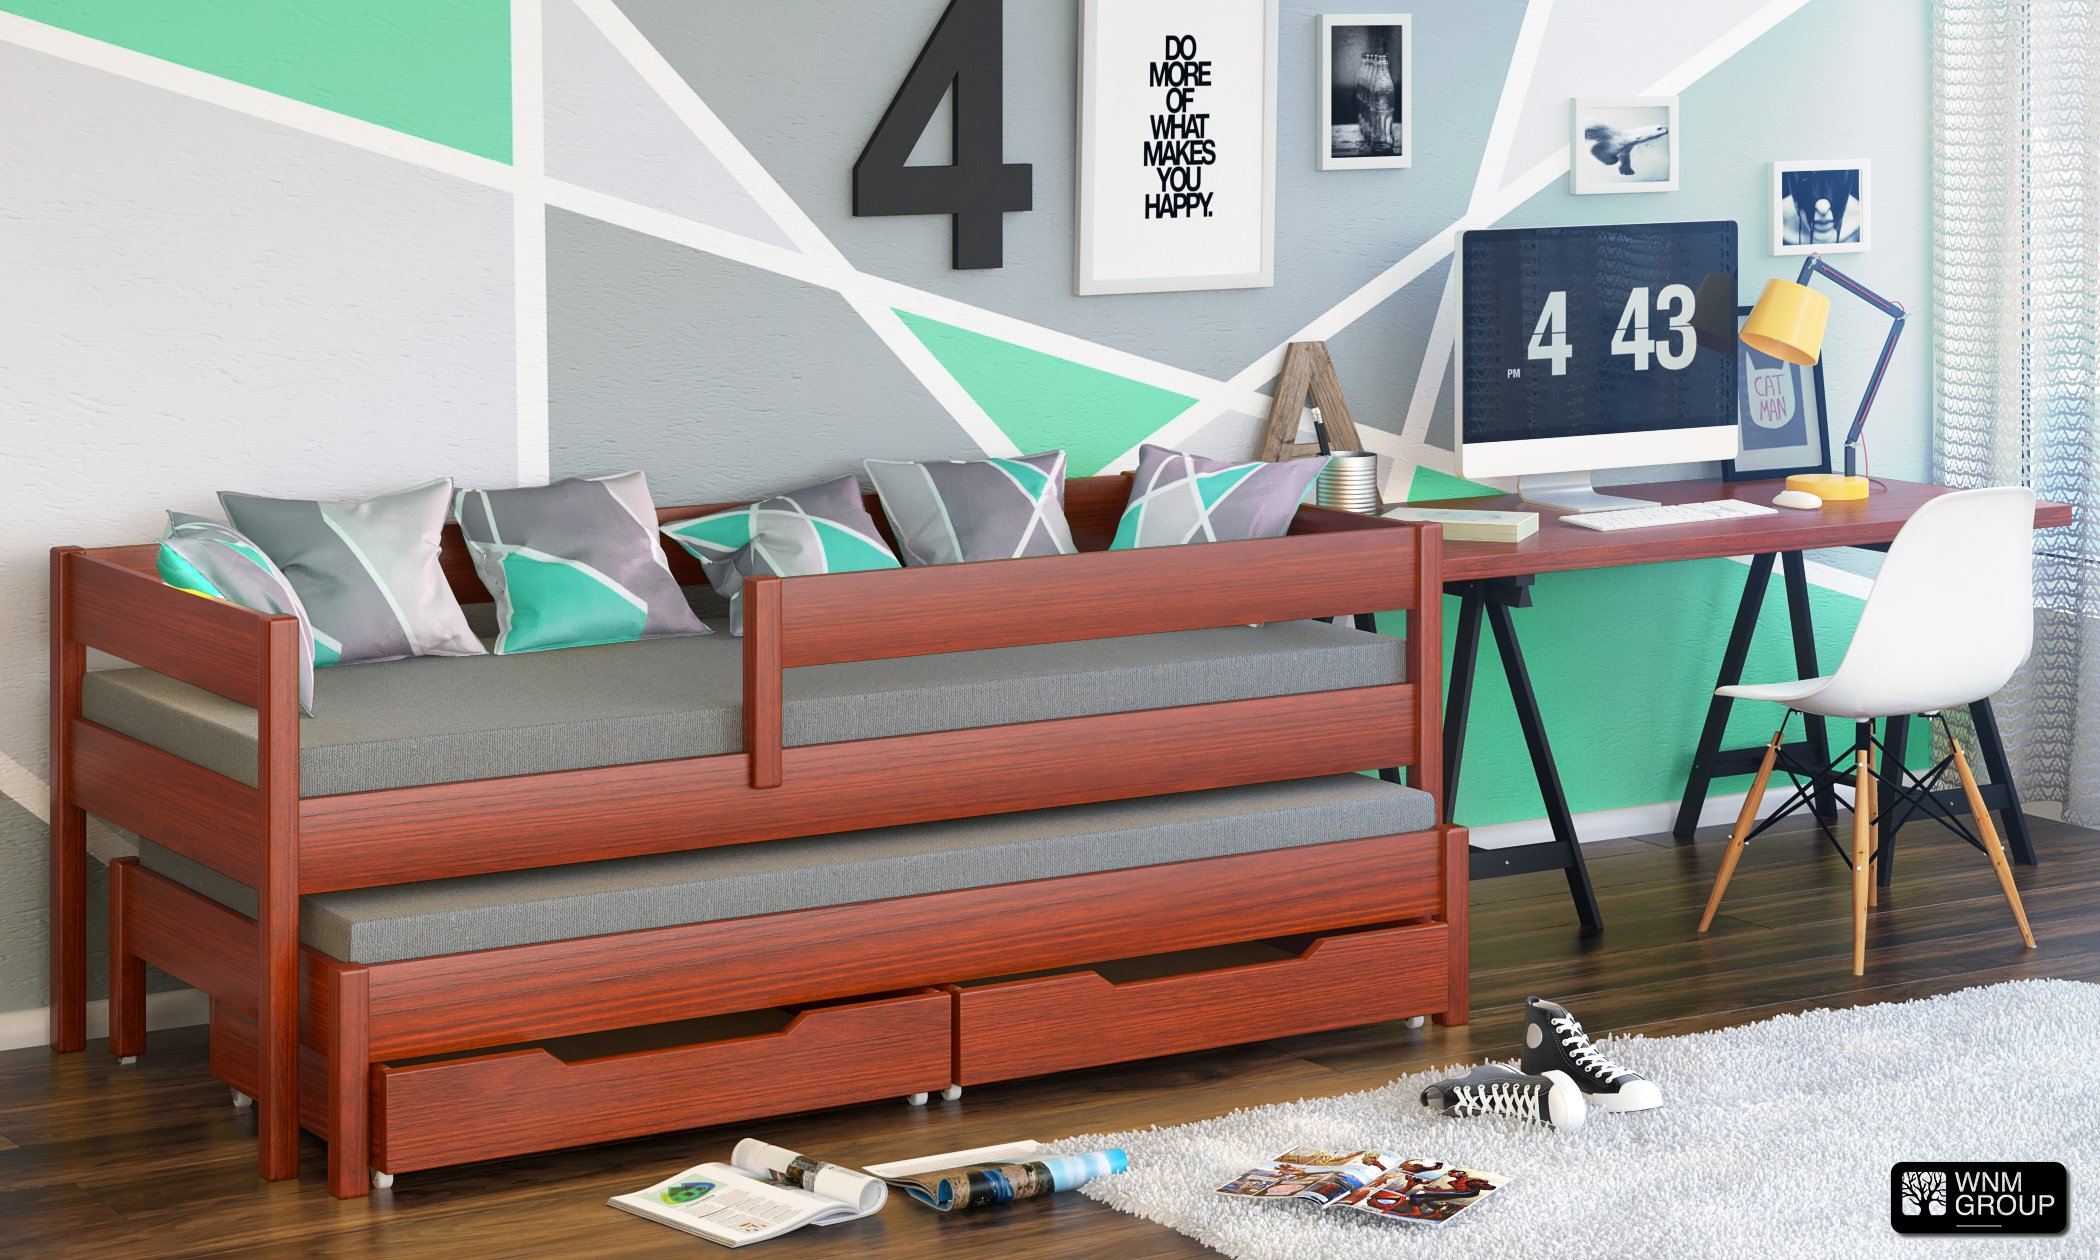 Jula Single bed for kids with trundle. Drawers included (180x80/170x80, Palisander) Jula Bed with trundle Legs made of solid wood with a thickness of 45x45 mm You get the external dimension of the bed by adding 7 cm in to the dimension in table Bedframe strength up to 150kg 2